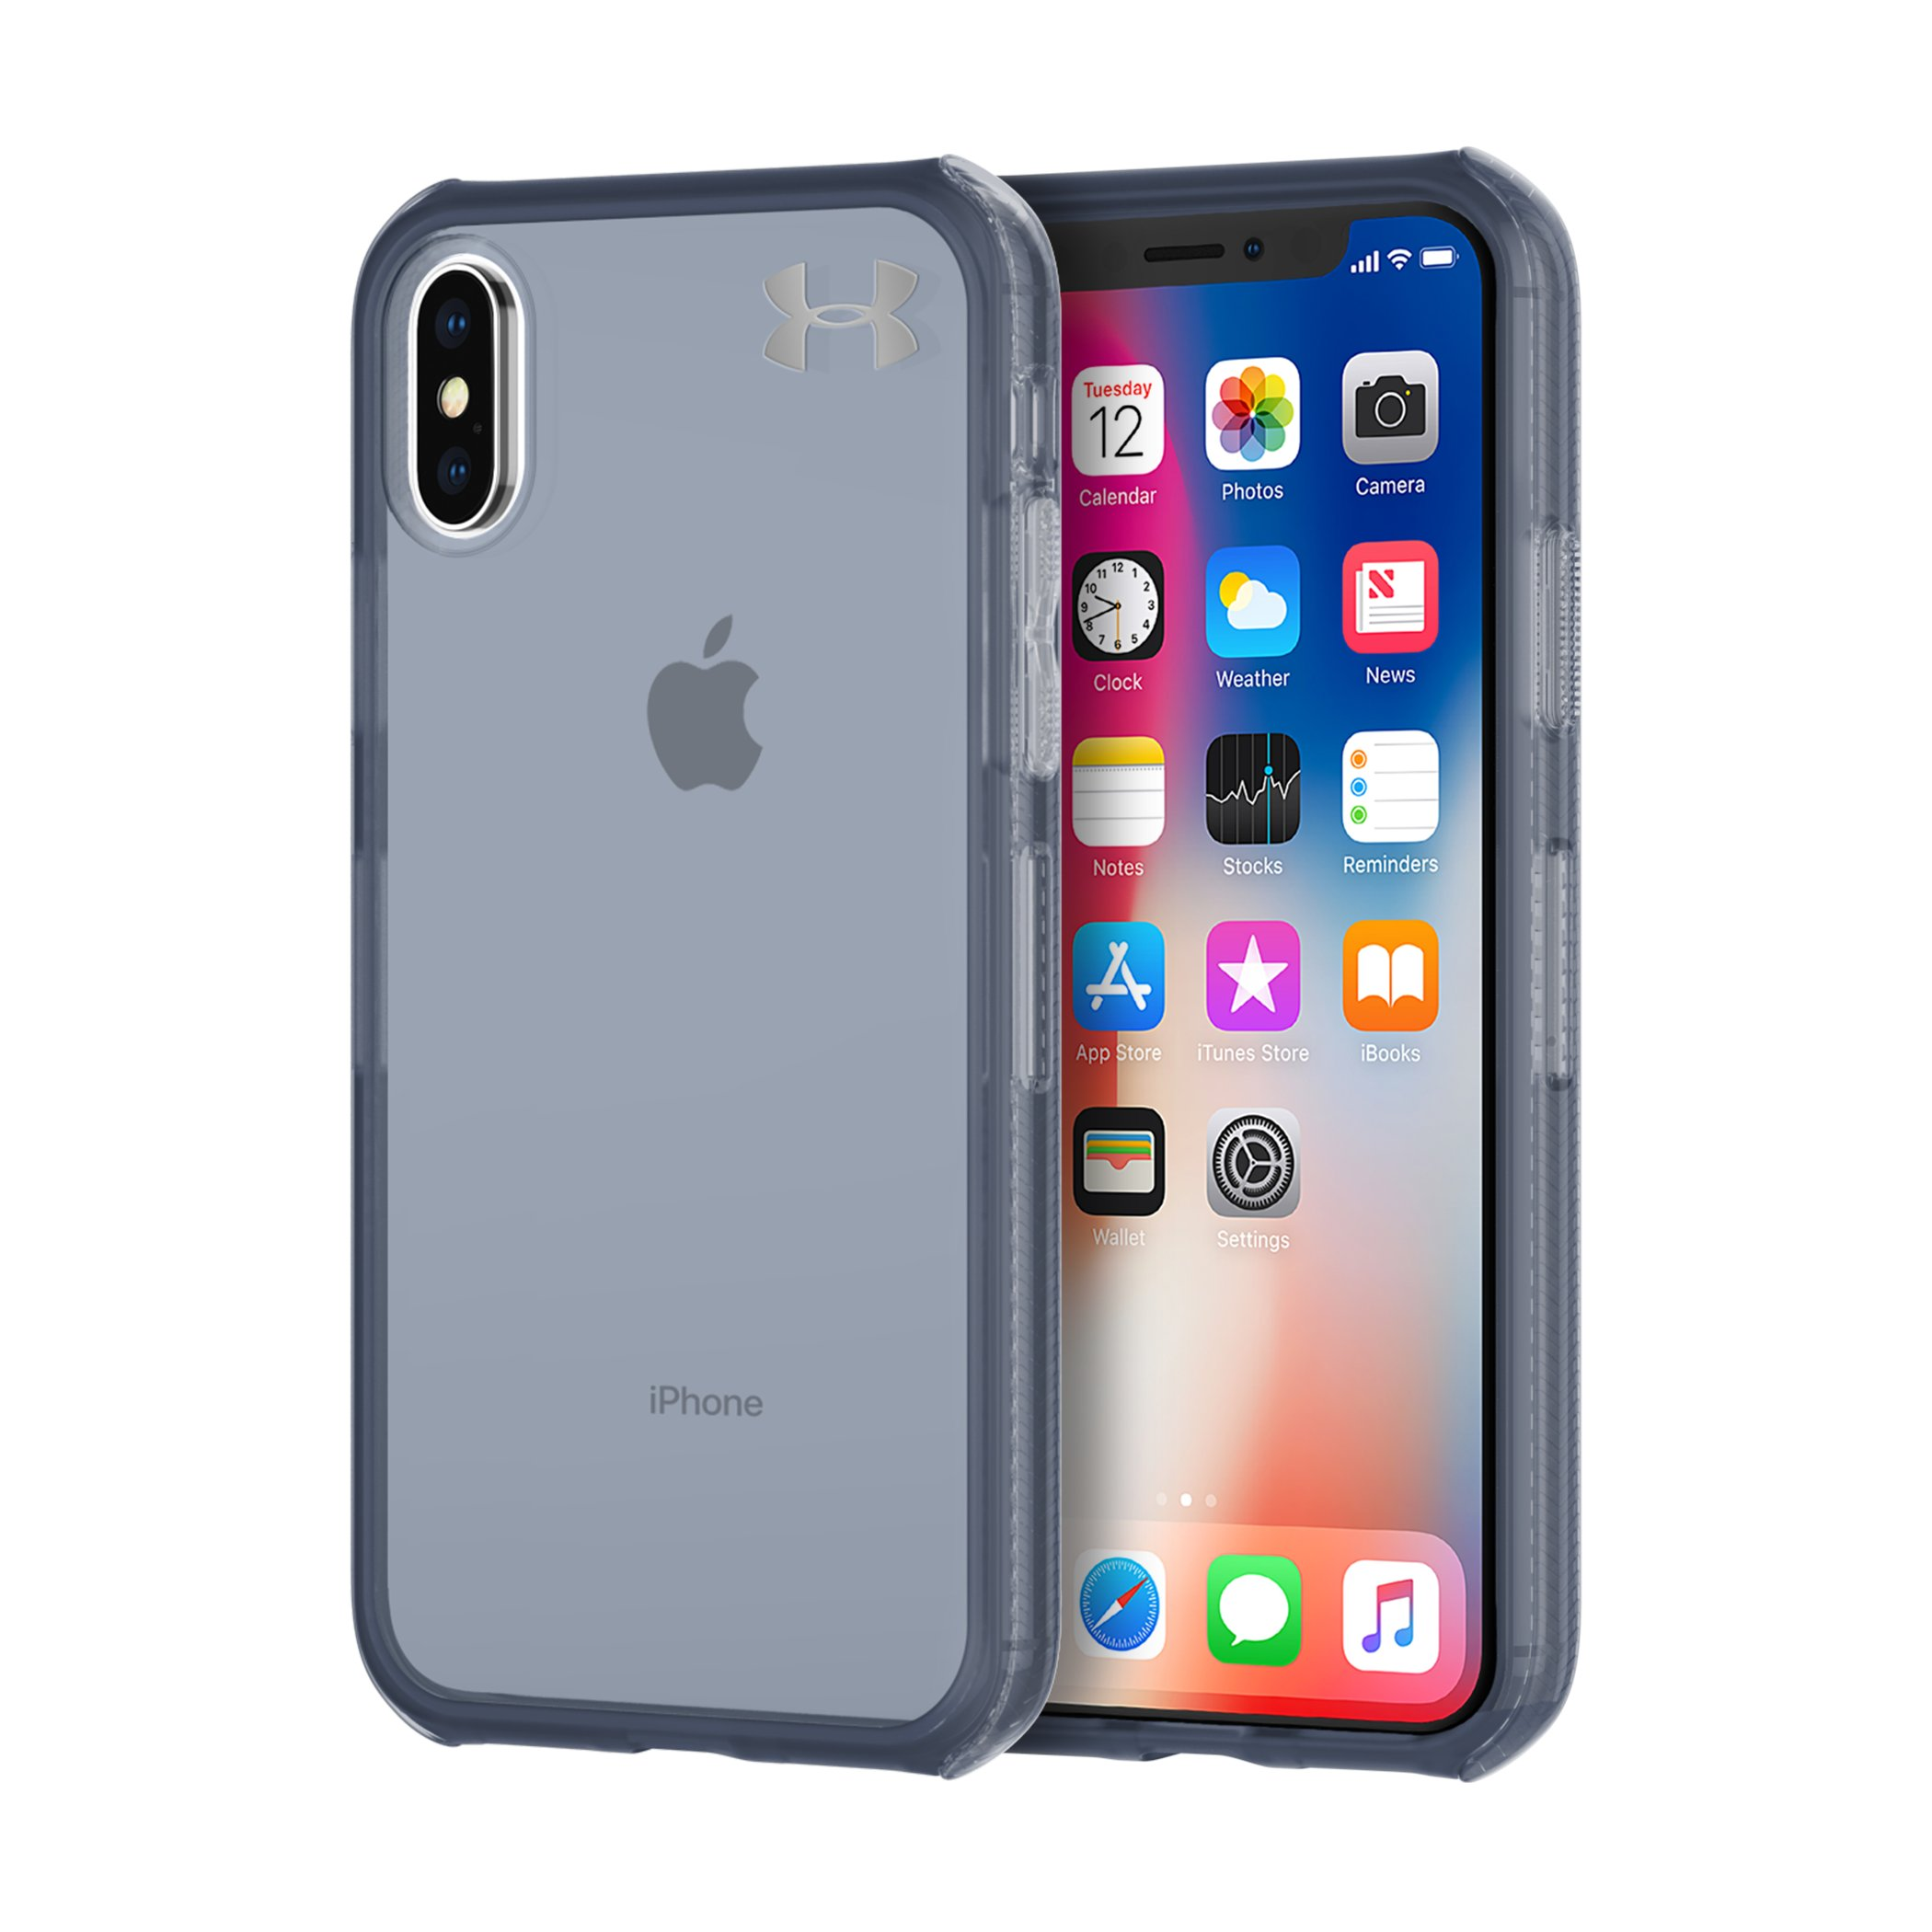 UA Protect Verge Case for iPhone X 2 Colors $39.99